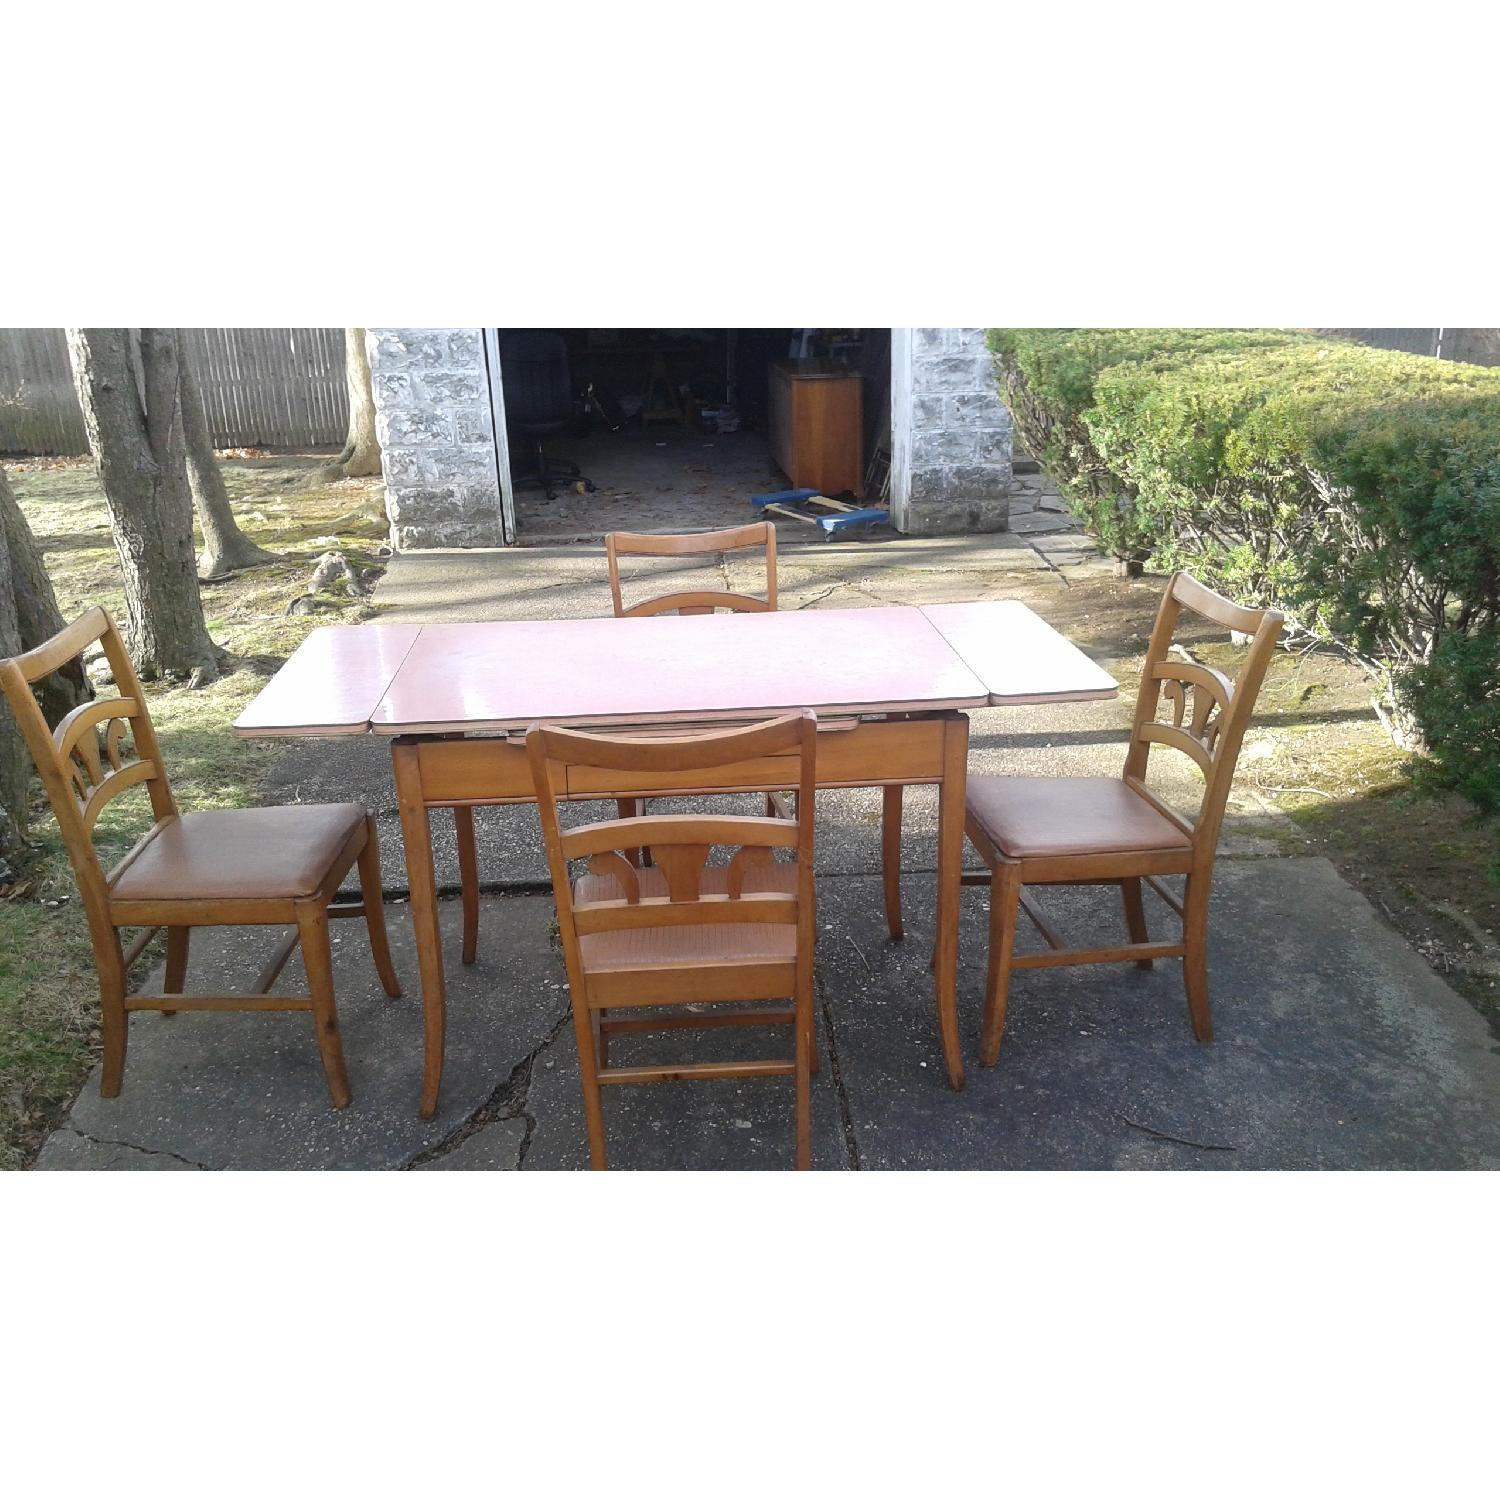 vintage dining room table w 4 chairs - 4 Chair Dining Table